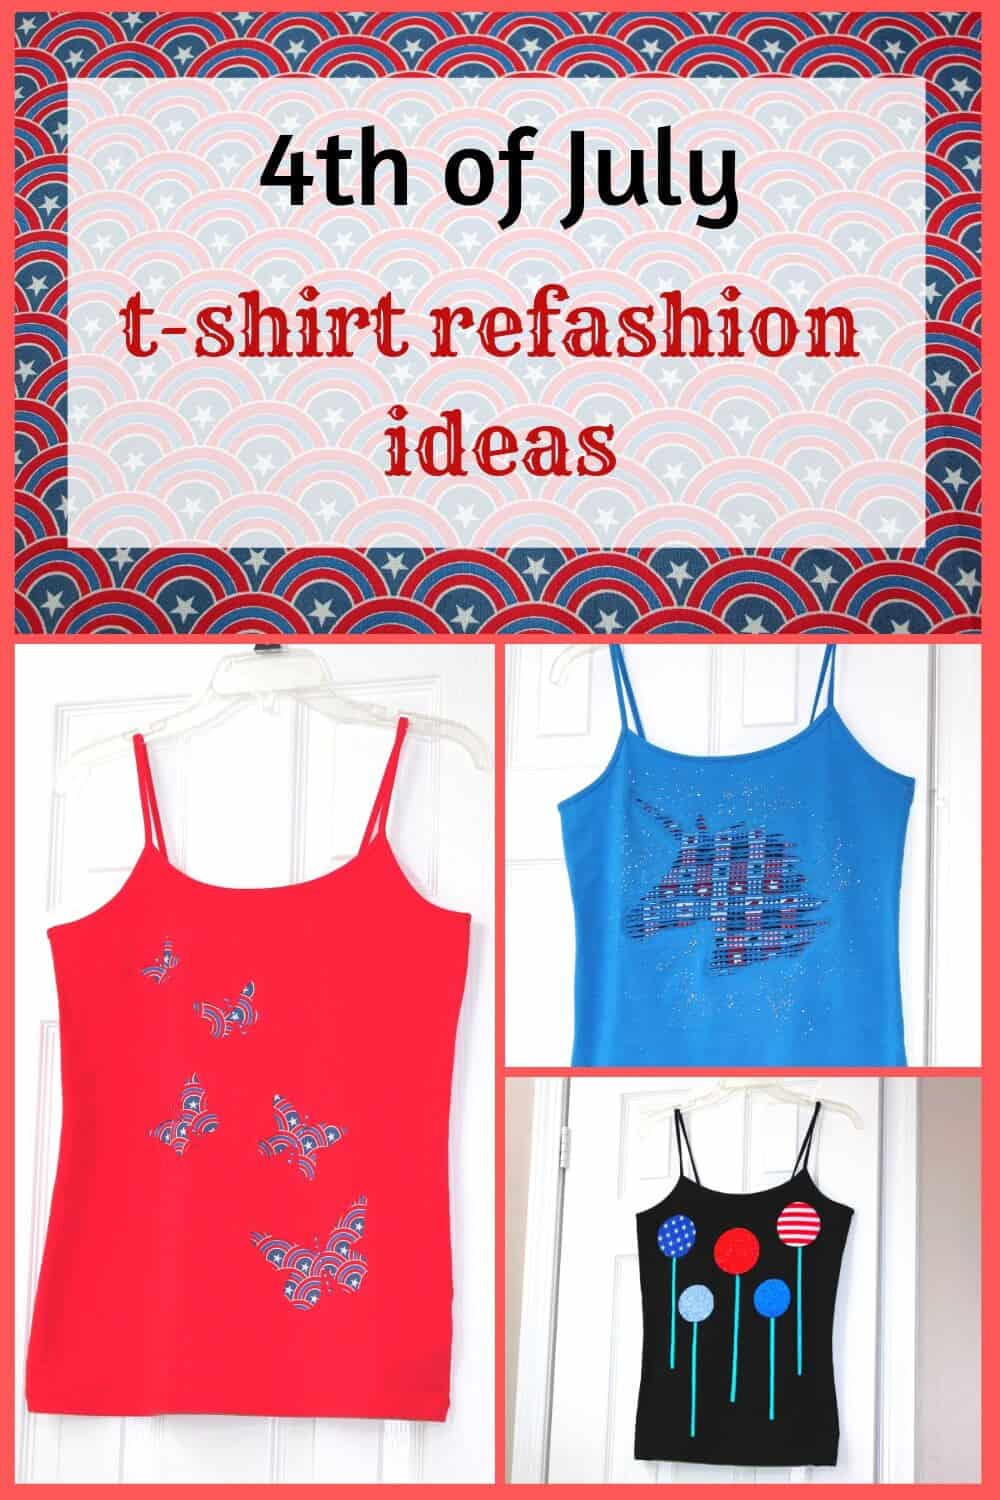 t-shirt refashion ideas pin for Pinterest